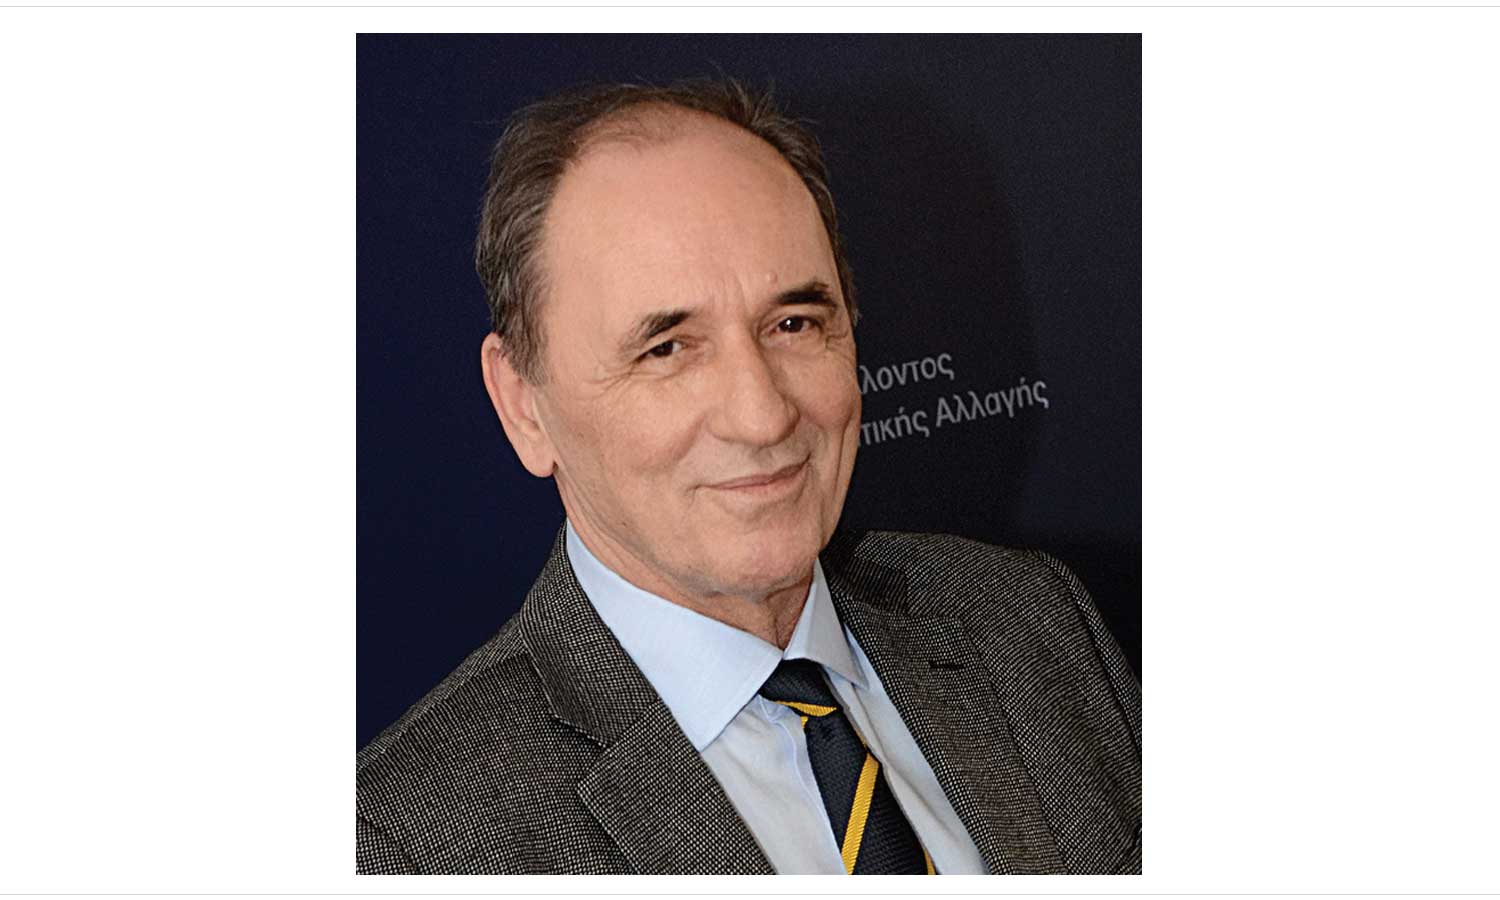 George Stathakis, Minister of Environment and Energy